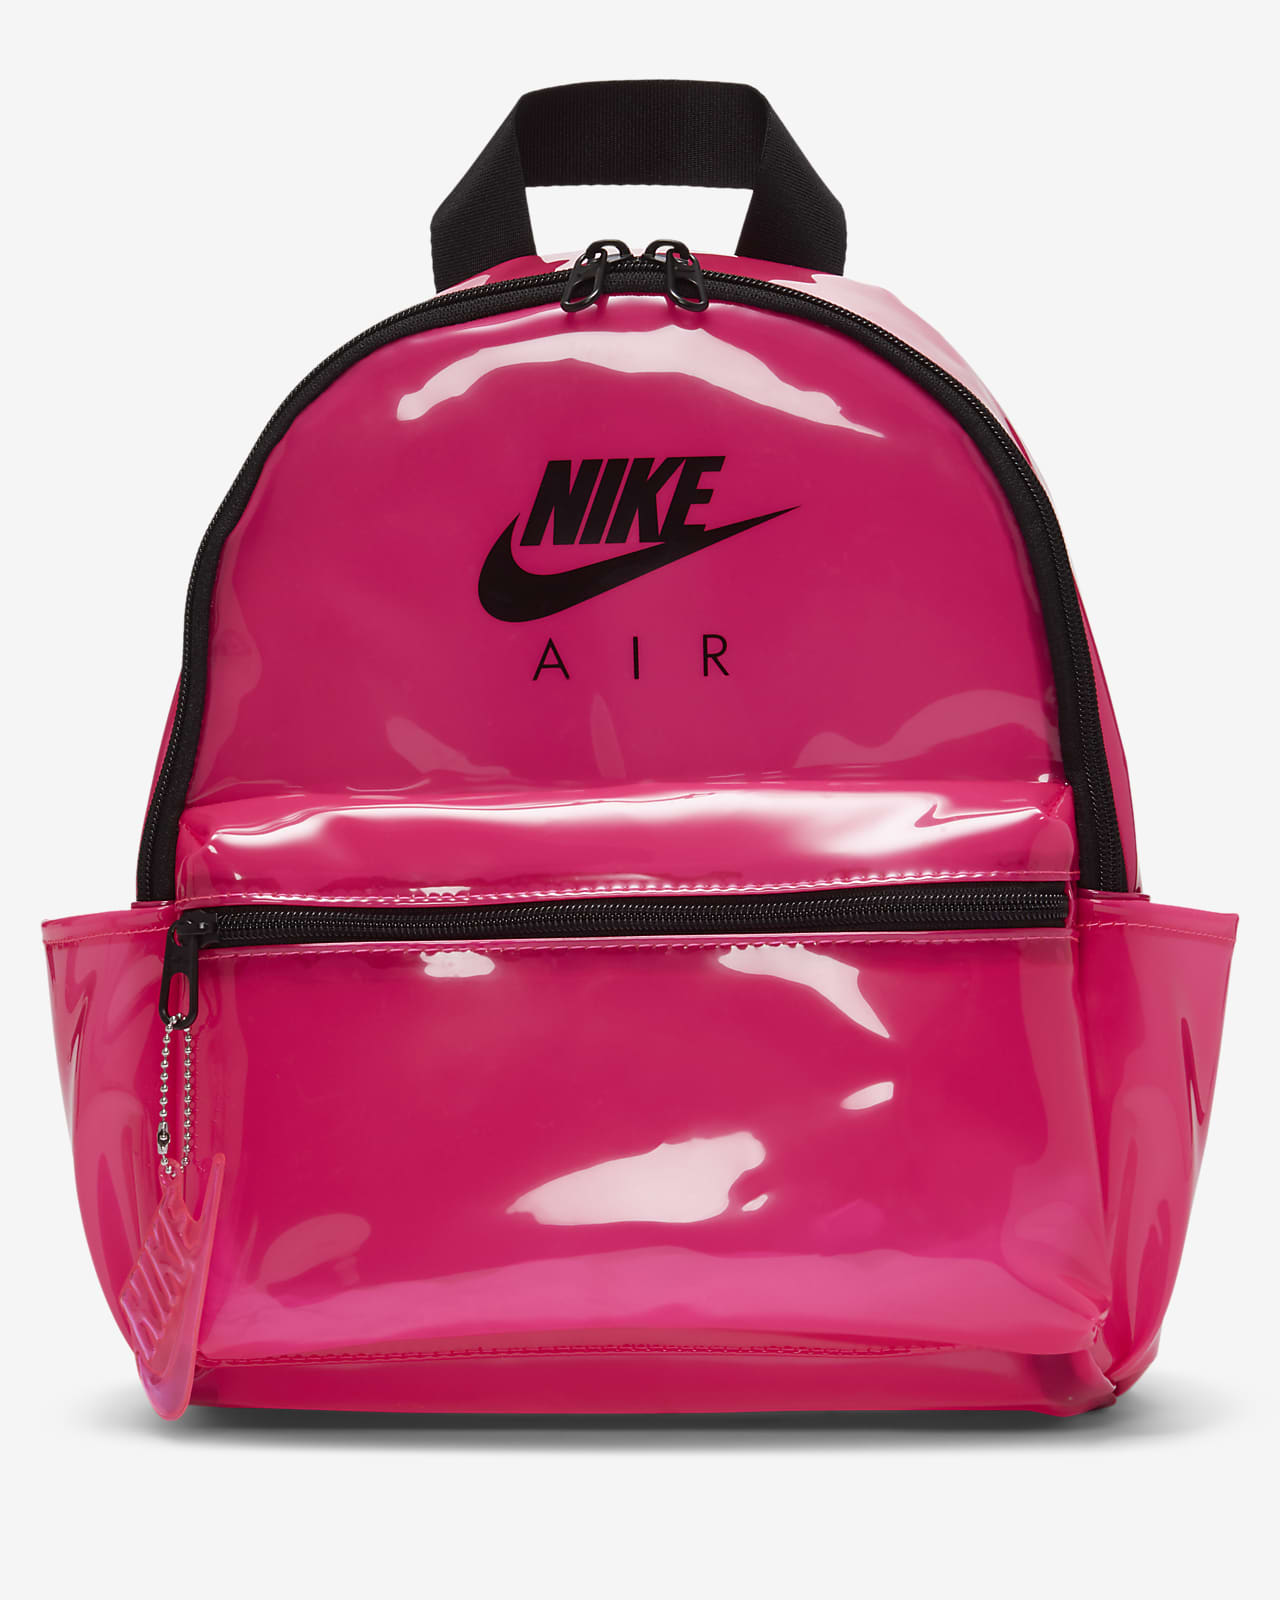 Conexión Manifiesto Comité  Nike Just Do It Backpack (Mini). Nike HR